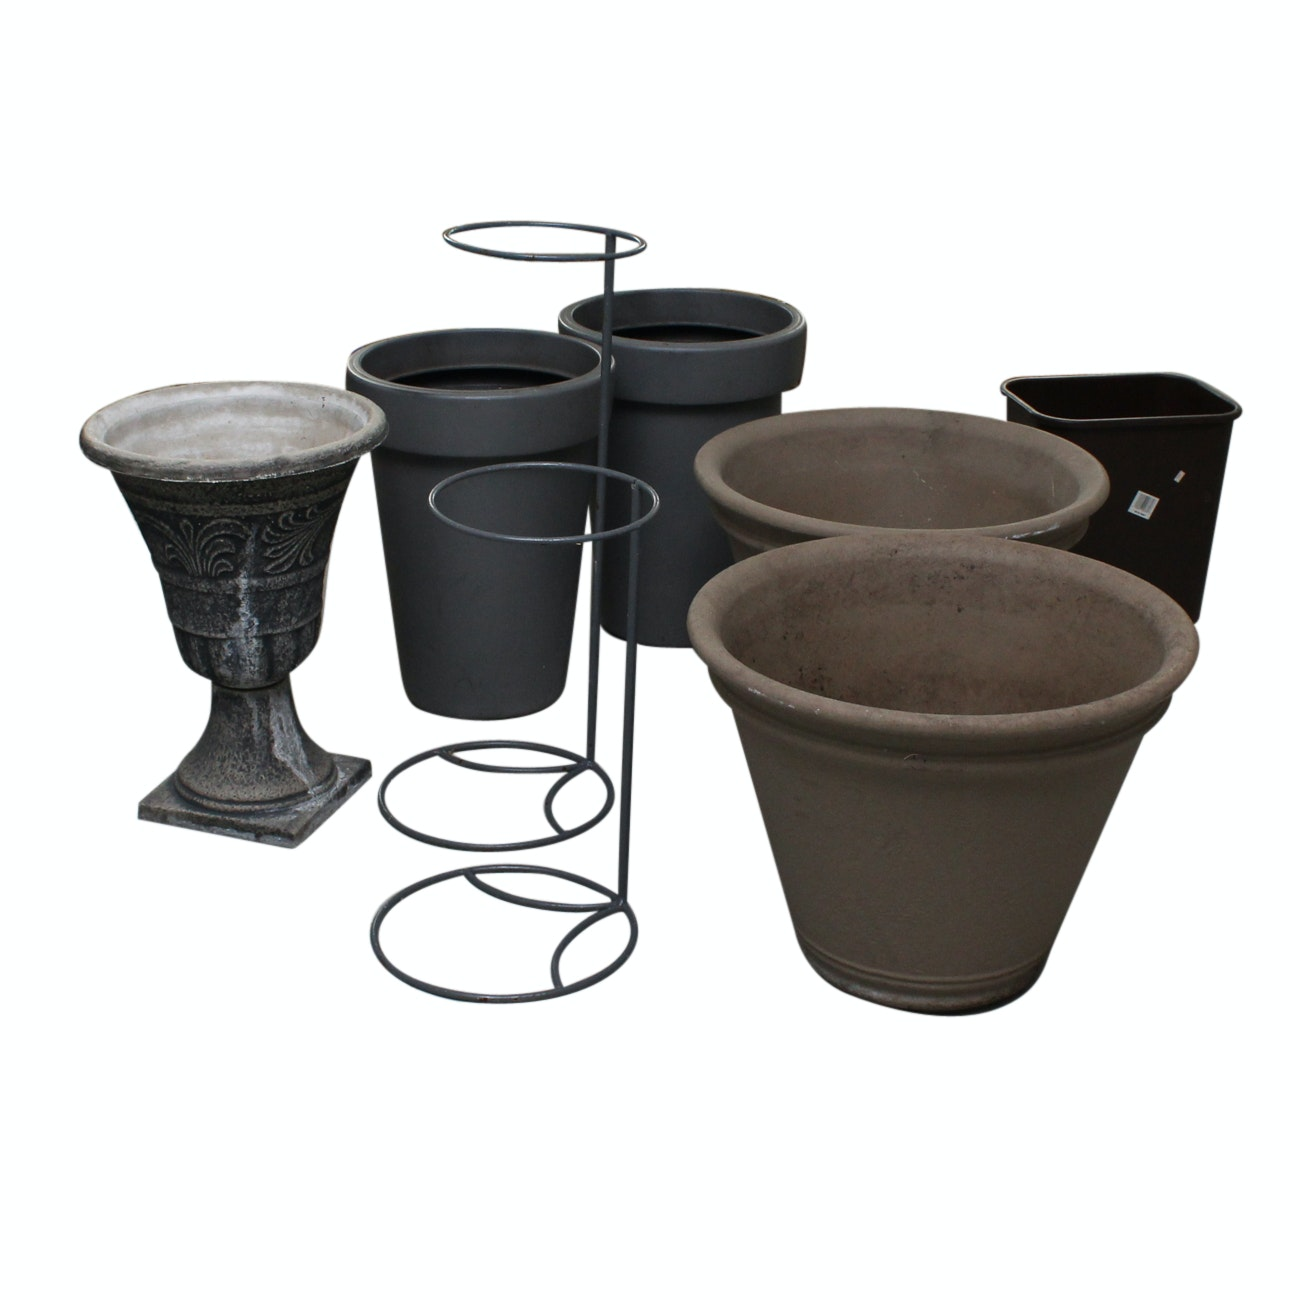 Planters and Planter Stands